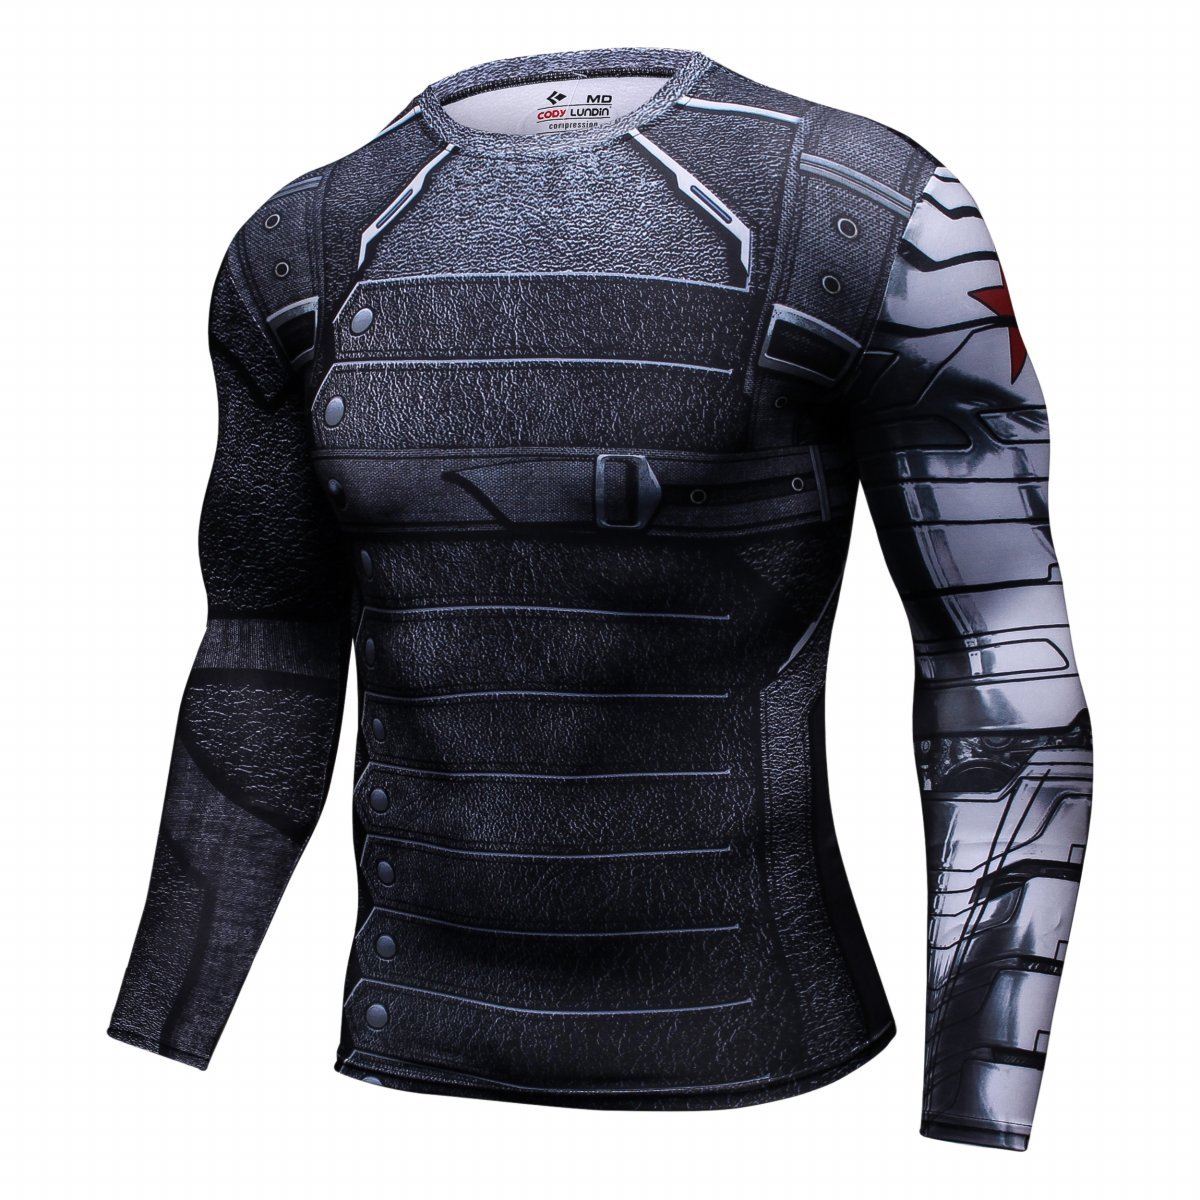 Cody Lundin® Men's Compression Workout Top Winter Warrior Cosplay Long  Sleeve Sport Tight Shirt